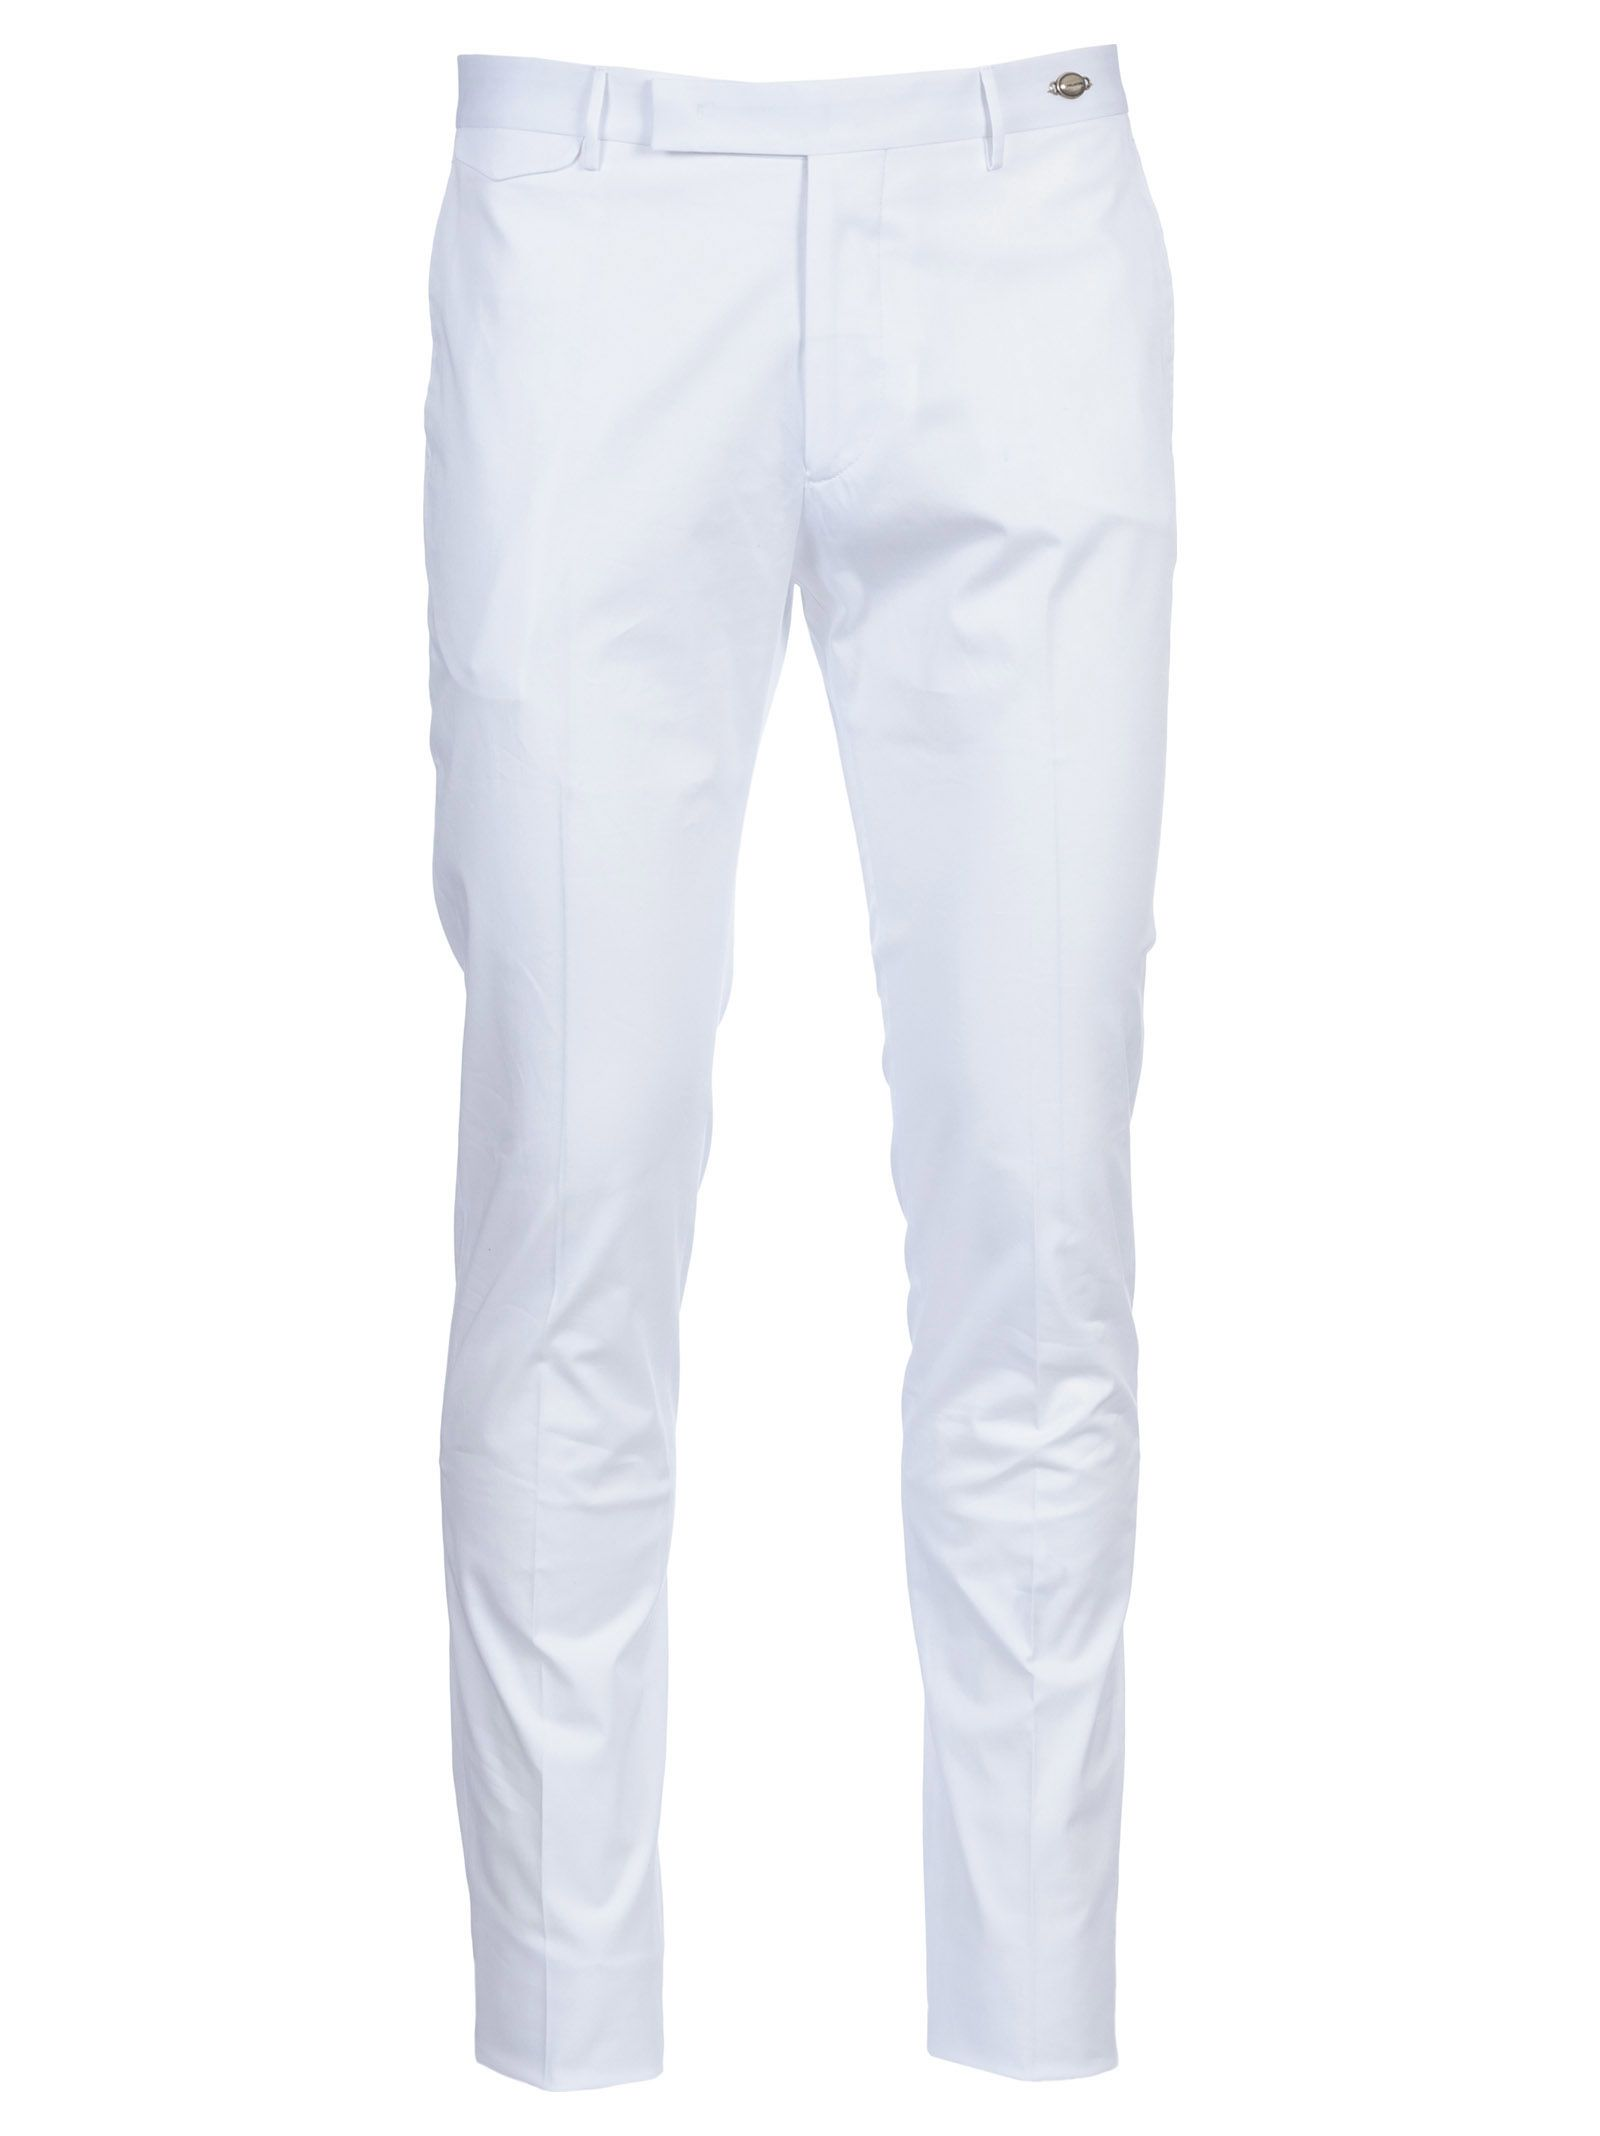 Tagliatore Cotton Trousers